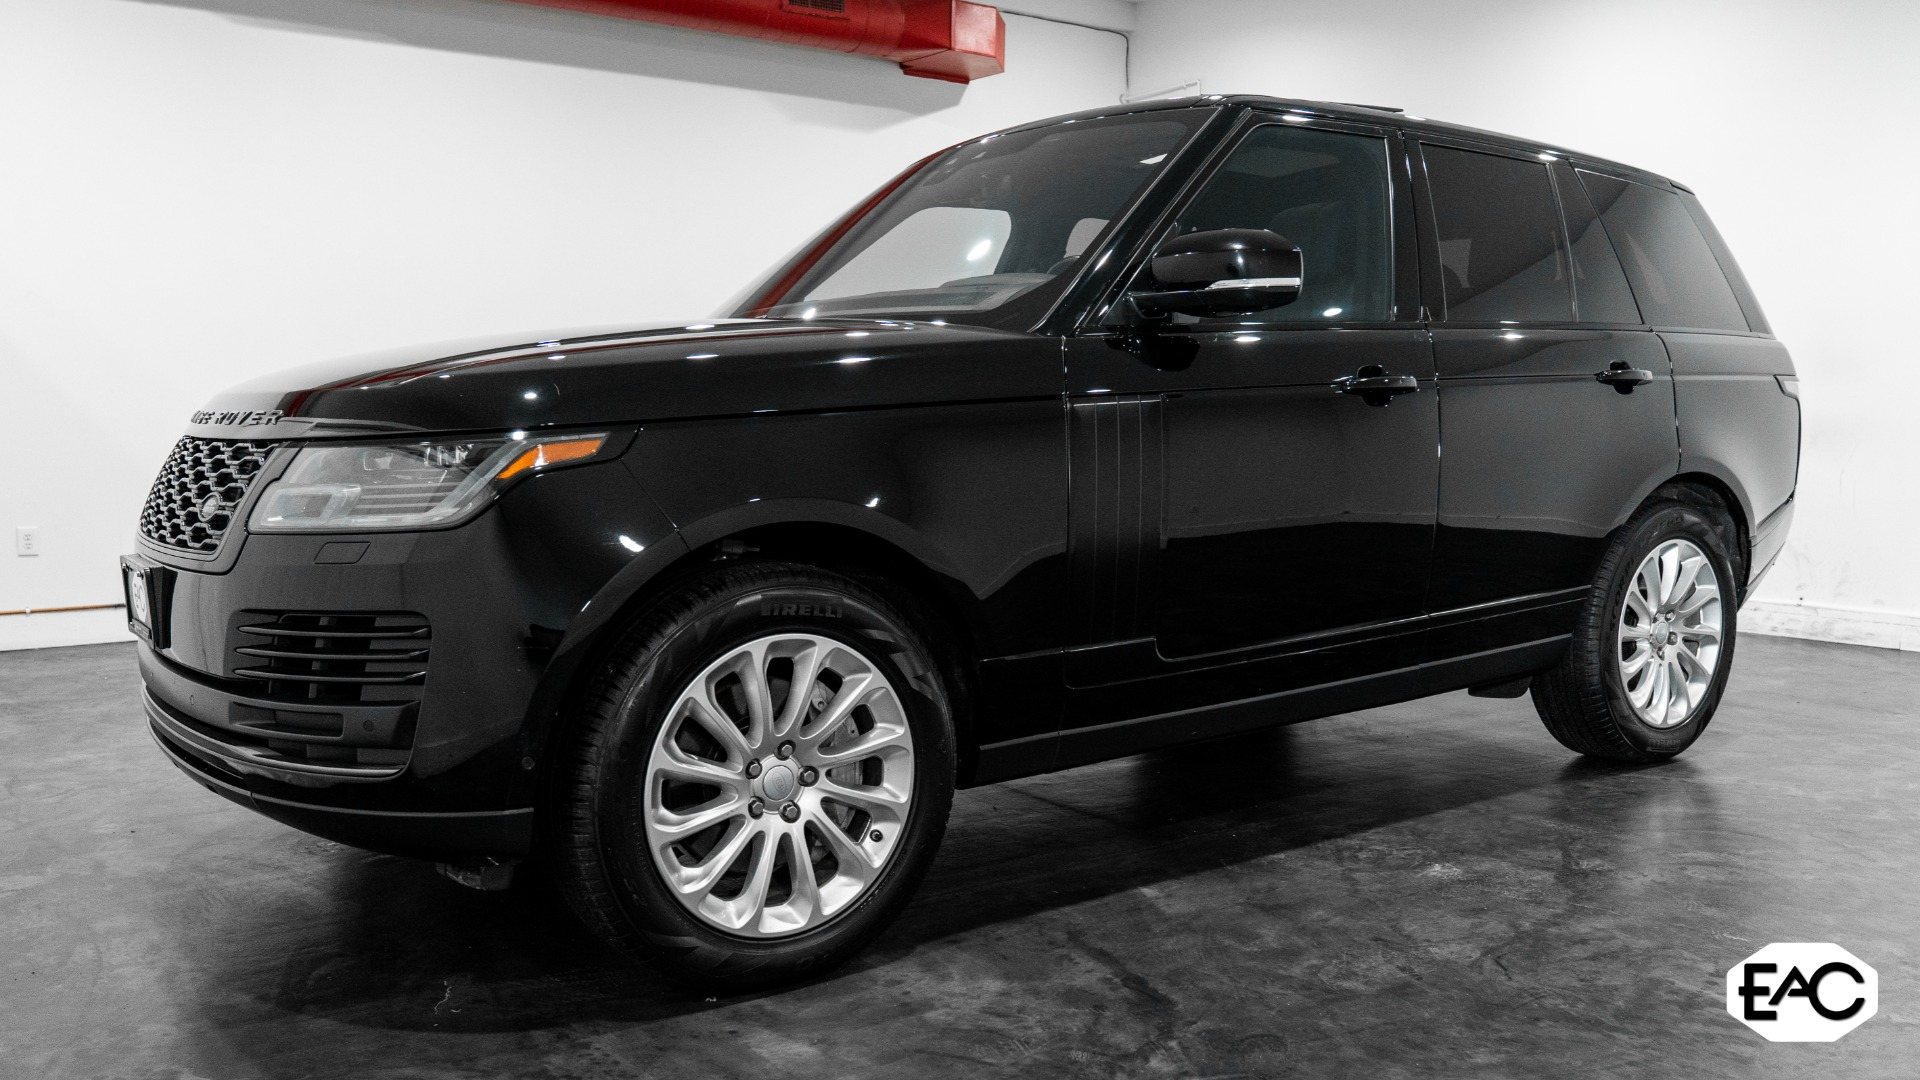 Used 2018 Land Rover Range Rover V6 for sale $71,990 at Empire Auto Collection in Warren MI 48091 1